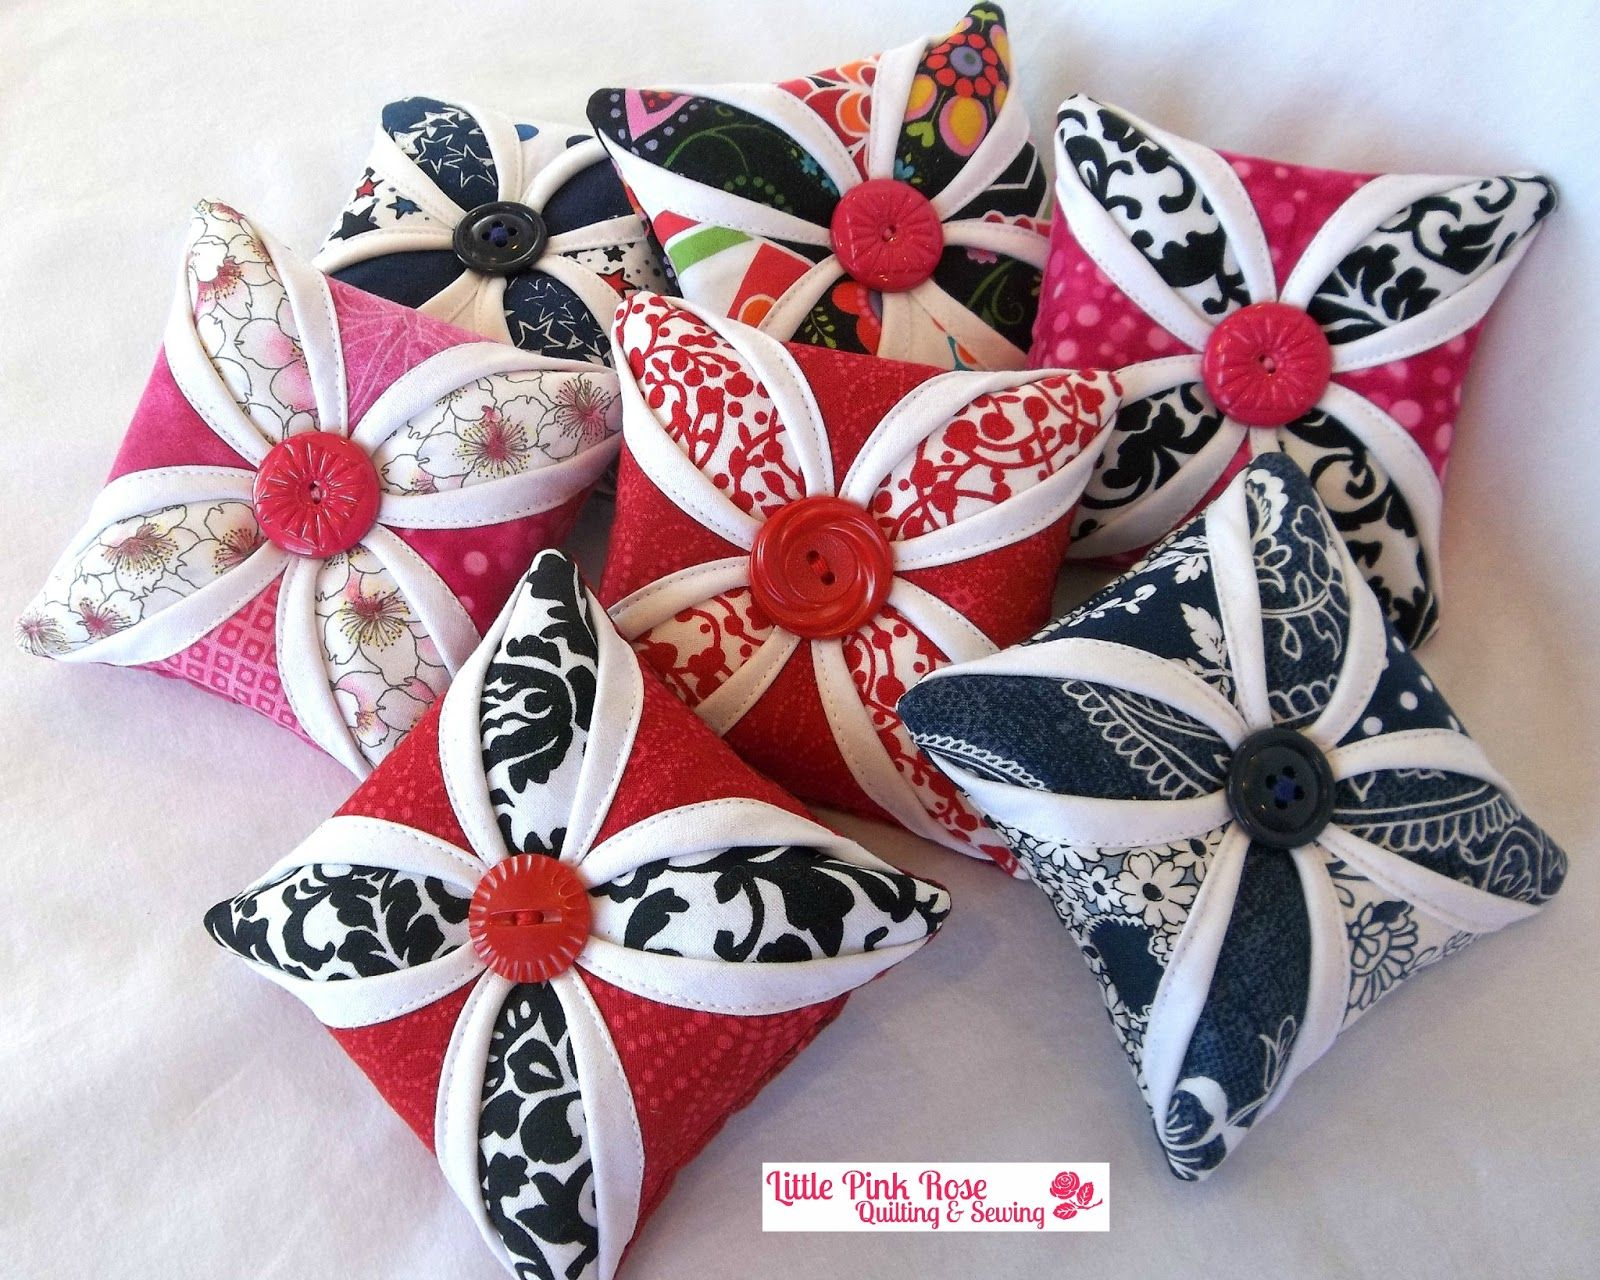 Little Pink Rose Quilting & Sewing Blog: New Pincushions | My ... : quilting and sewing blogs - Adamdwight.com